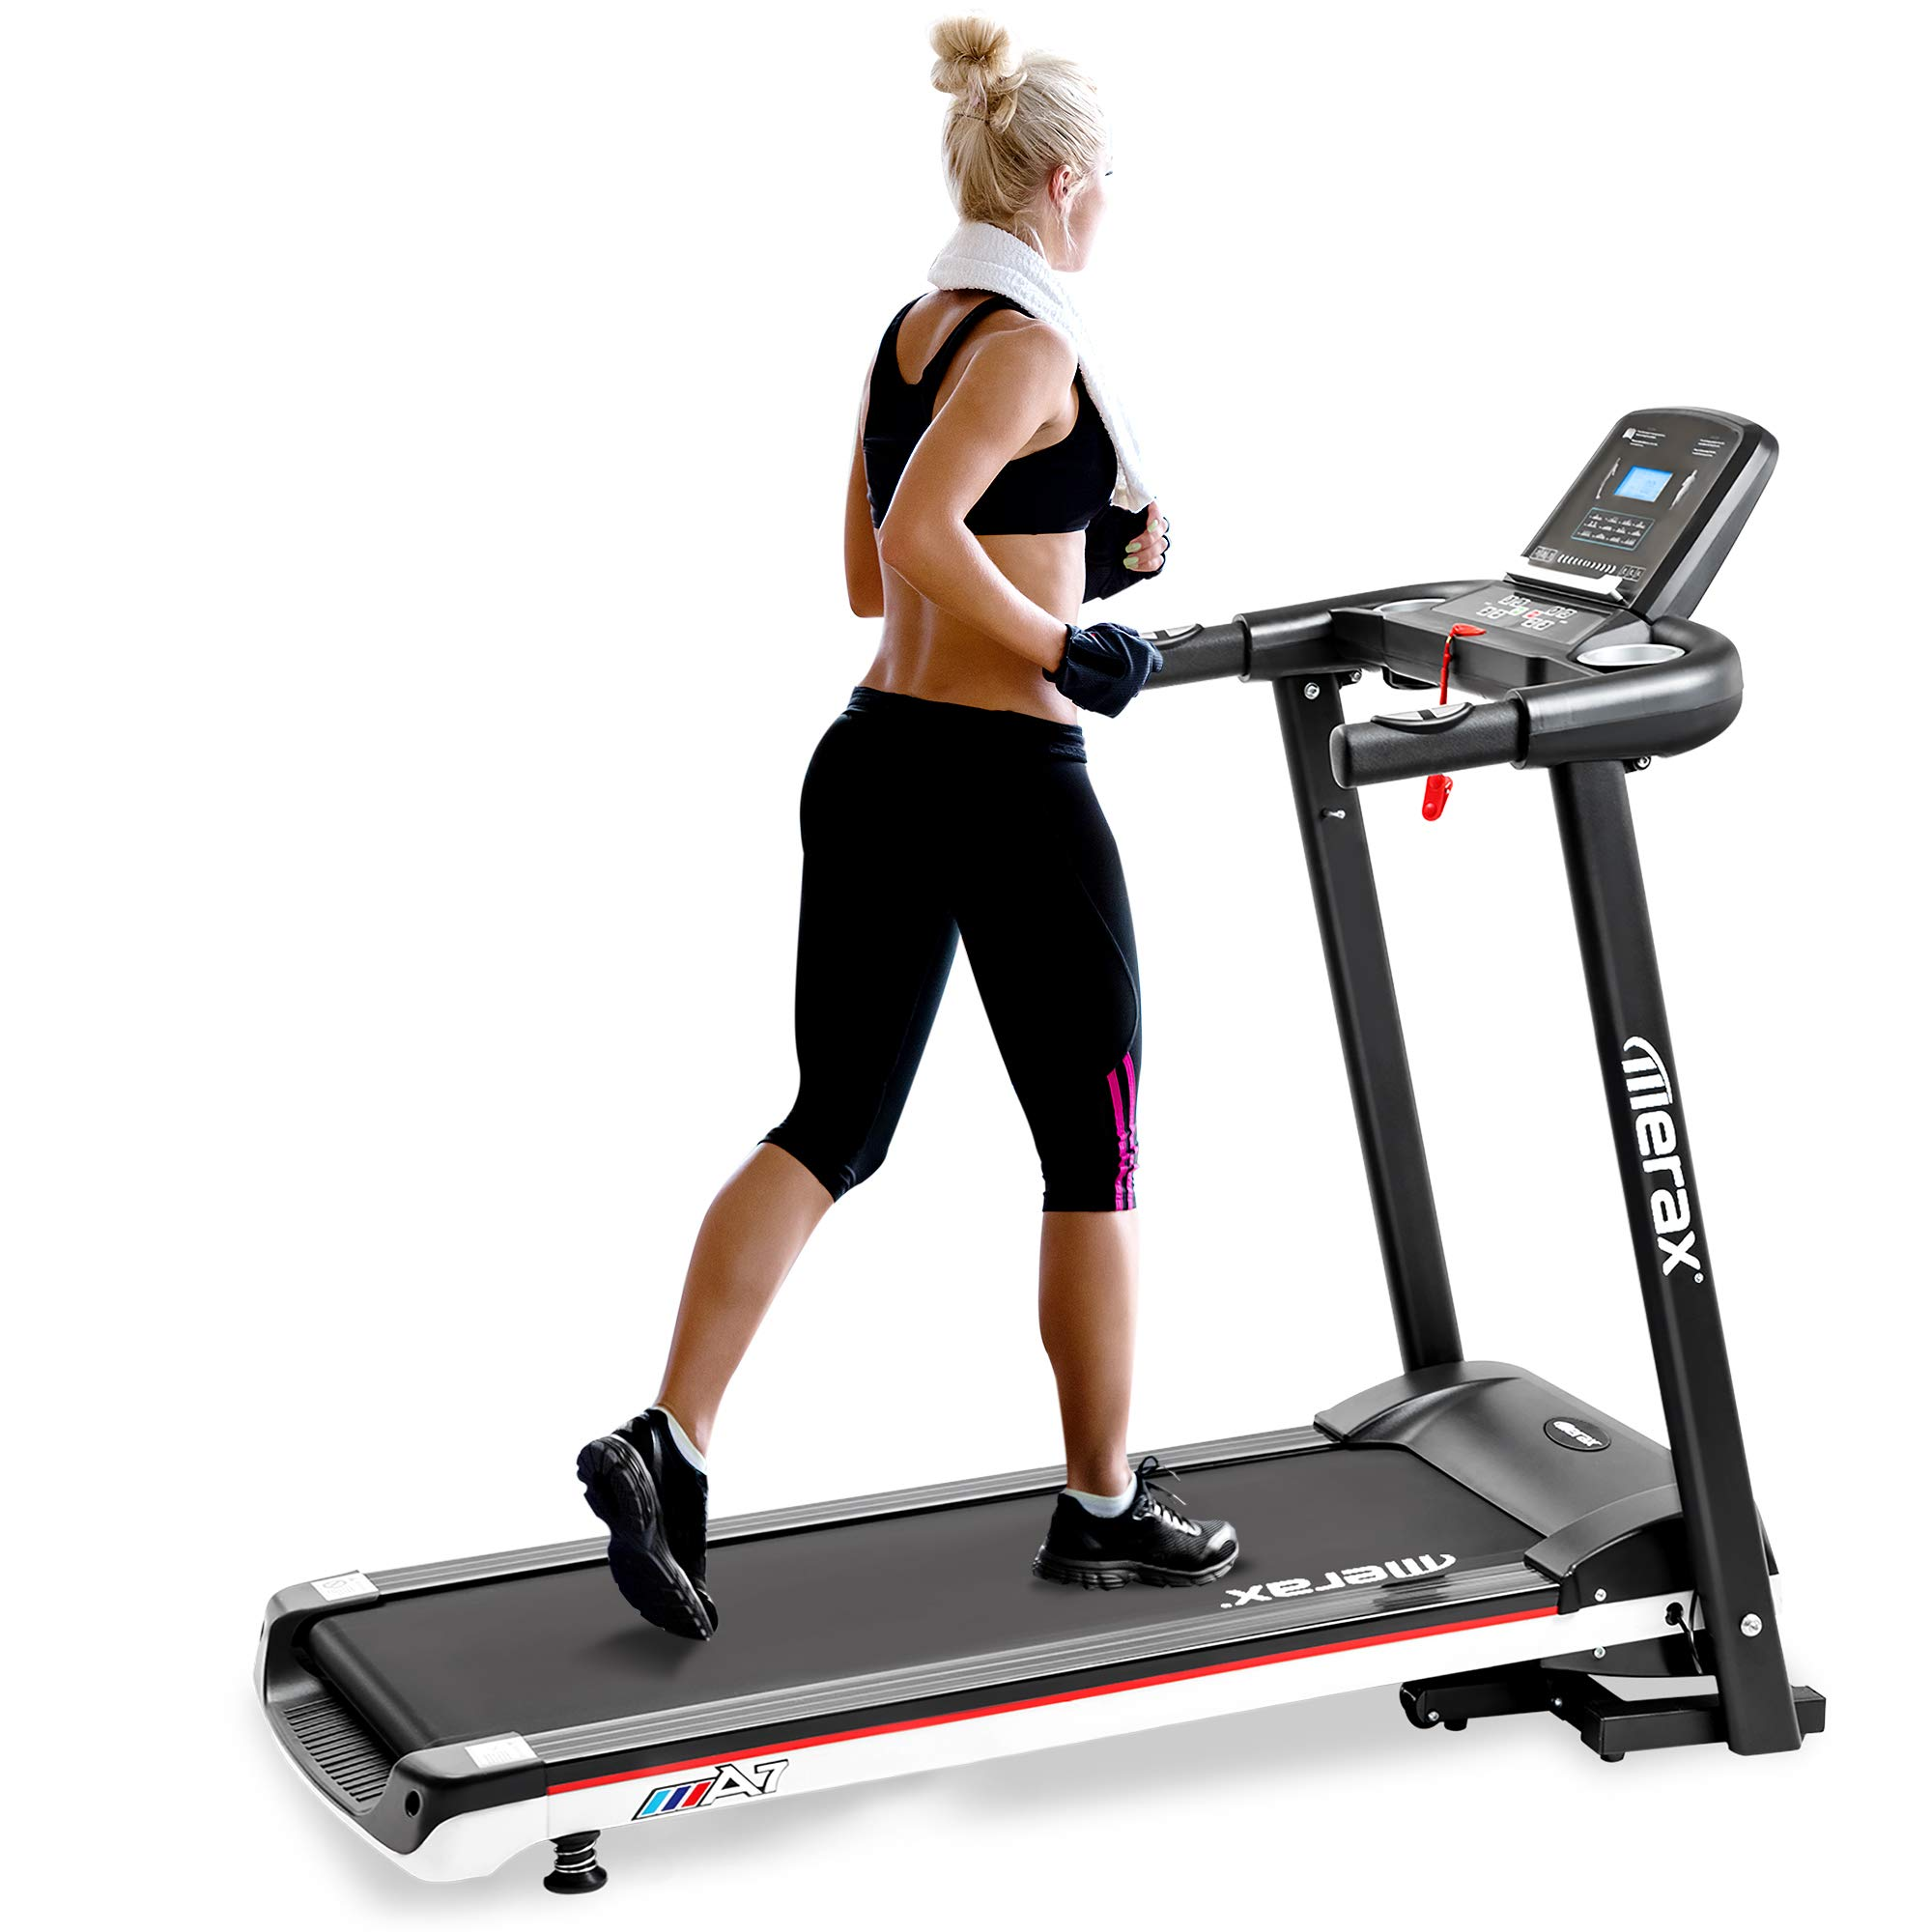 P PURLOVE Folding Treadmill Electric Treadmill for Running Easy Assembly Motorized Power Running Machine Fitness